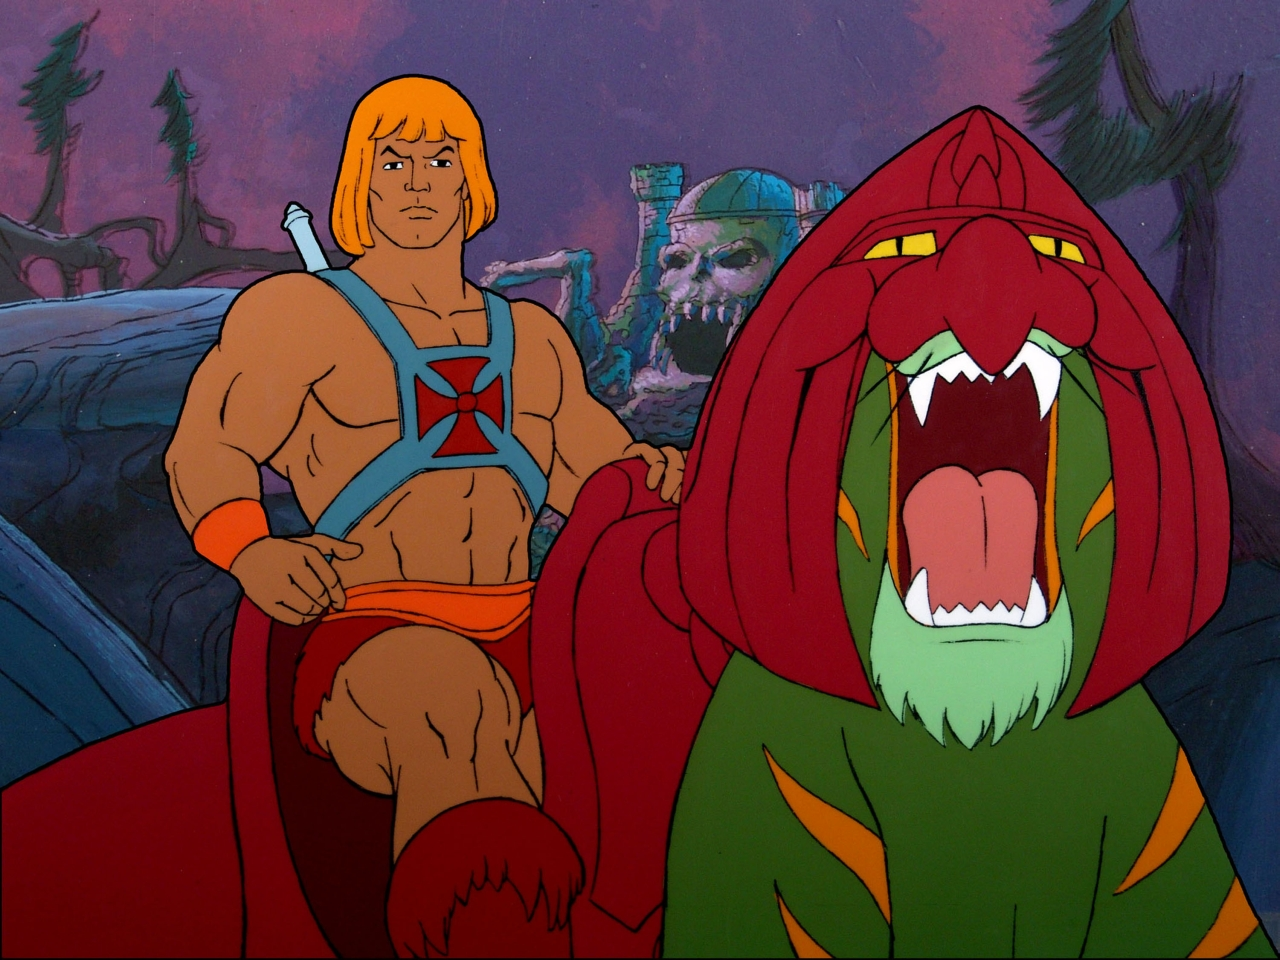 It's just a picture of He-Man on Battle Cat.